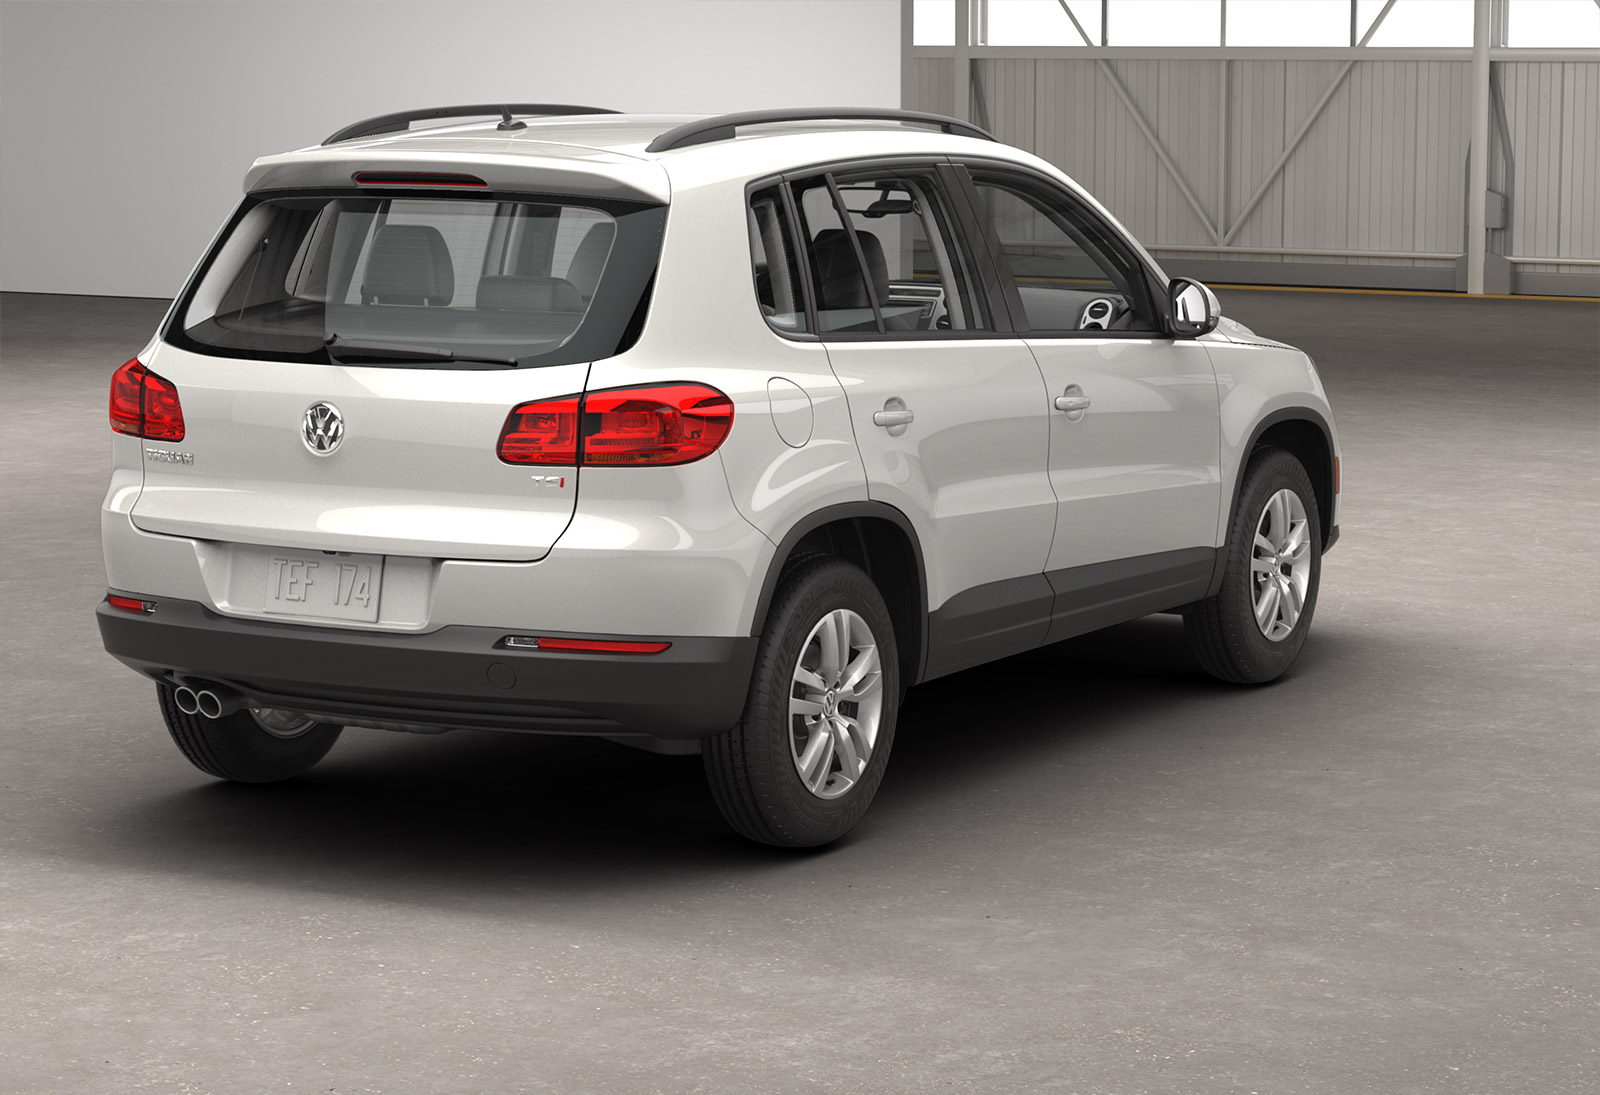 2016 tiguan capilano vw jason 39 s cars. Black Bedroom Furniture Sets. Home Design Ideas